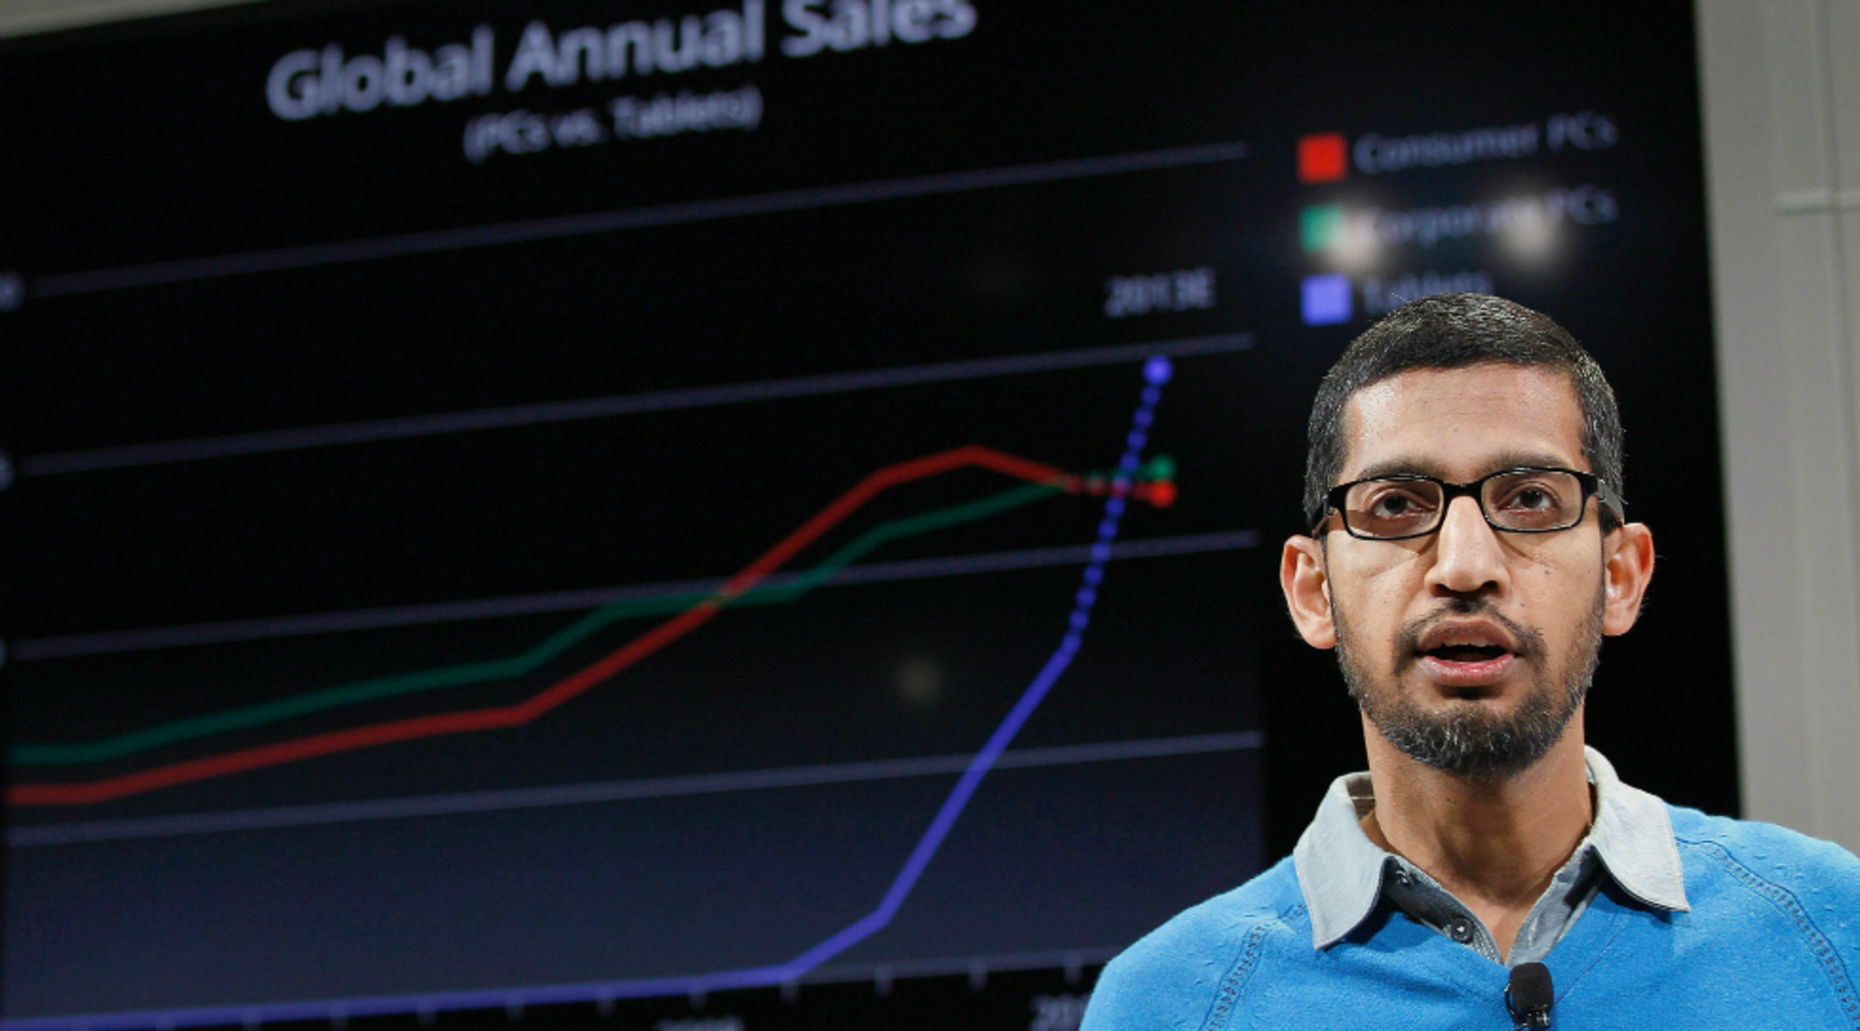 Google Senior Vice President Sundar Pichai. Photo by Bloomberg.